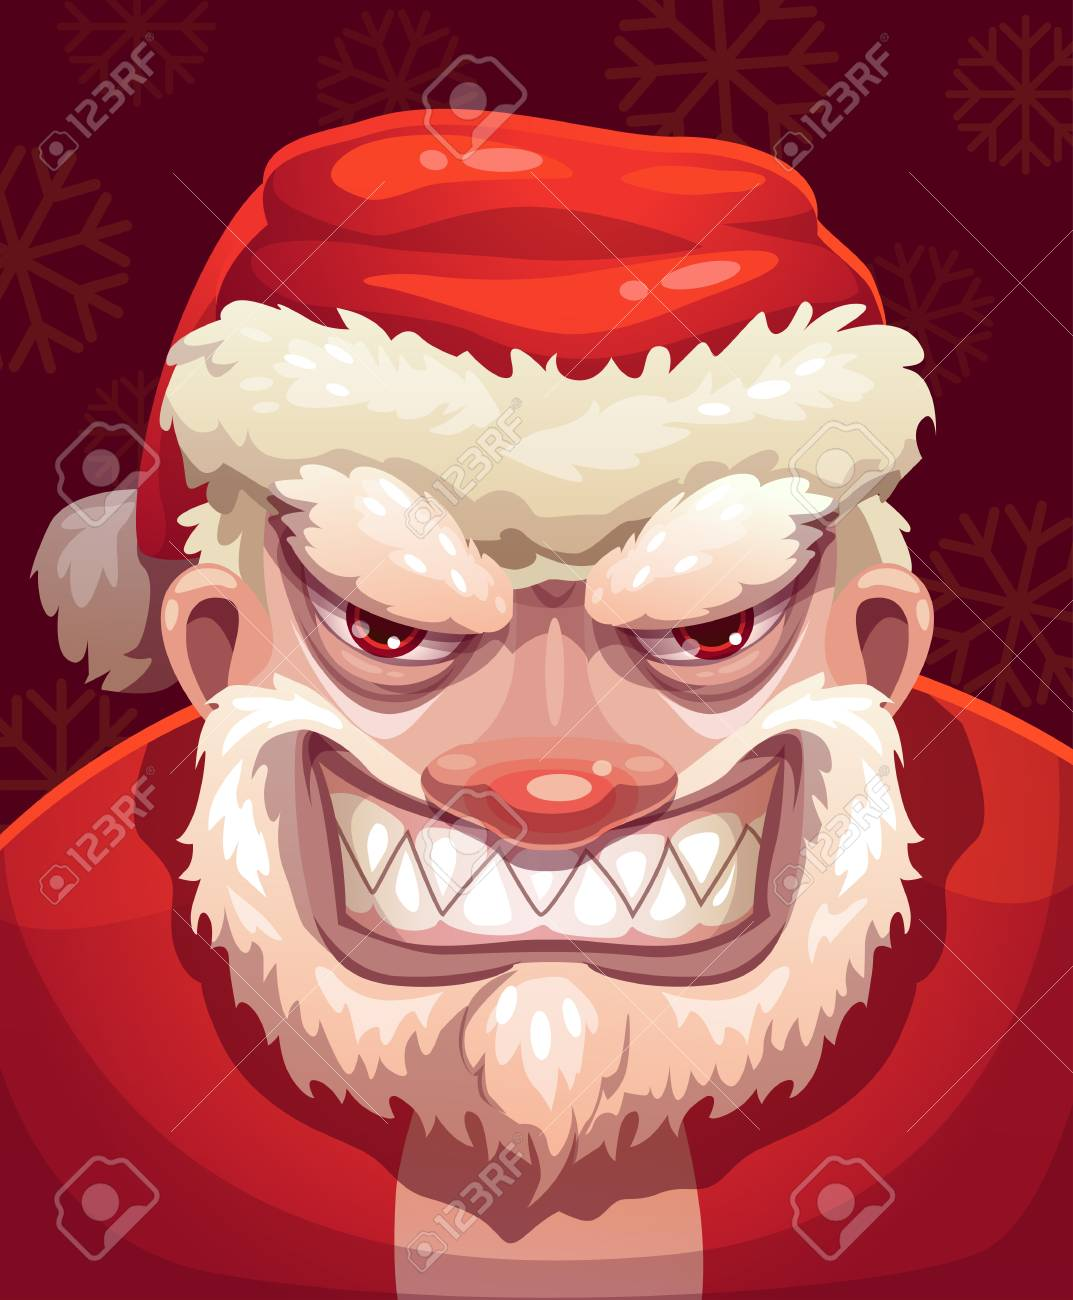 santa s face on an angry or bad mood showing his teeth royalty free